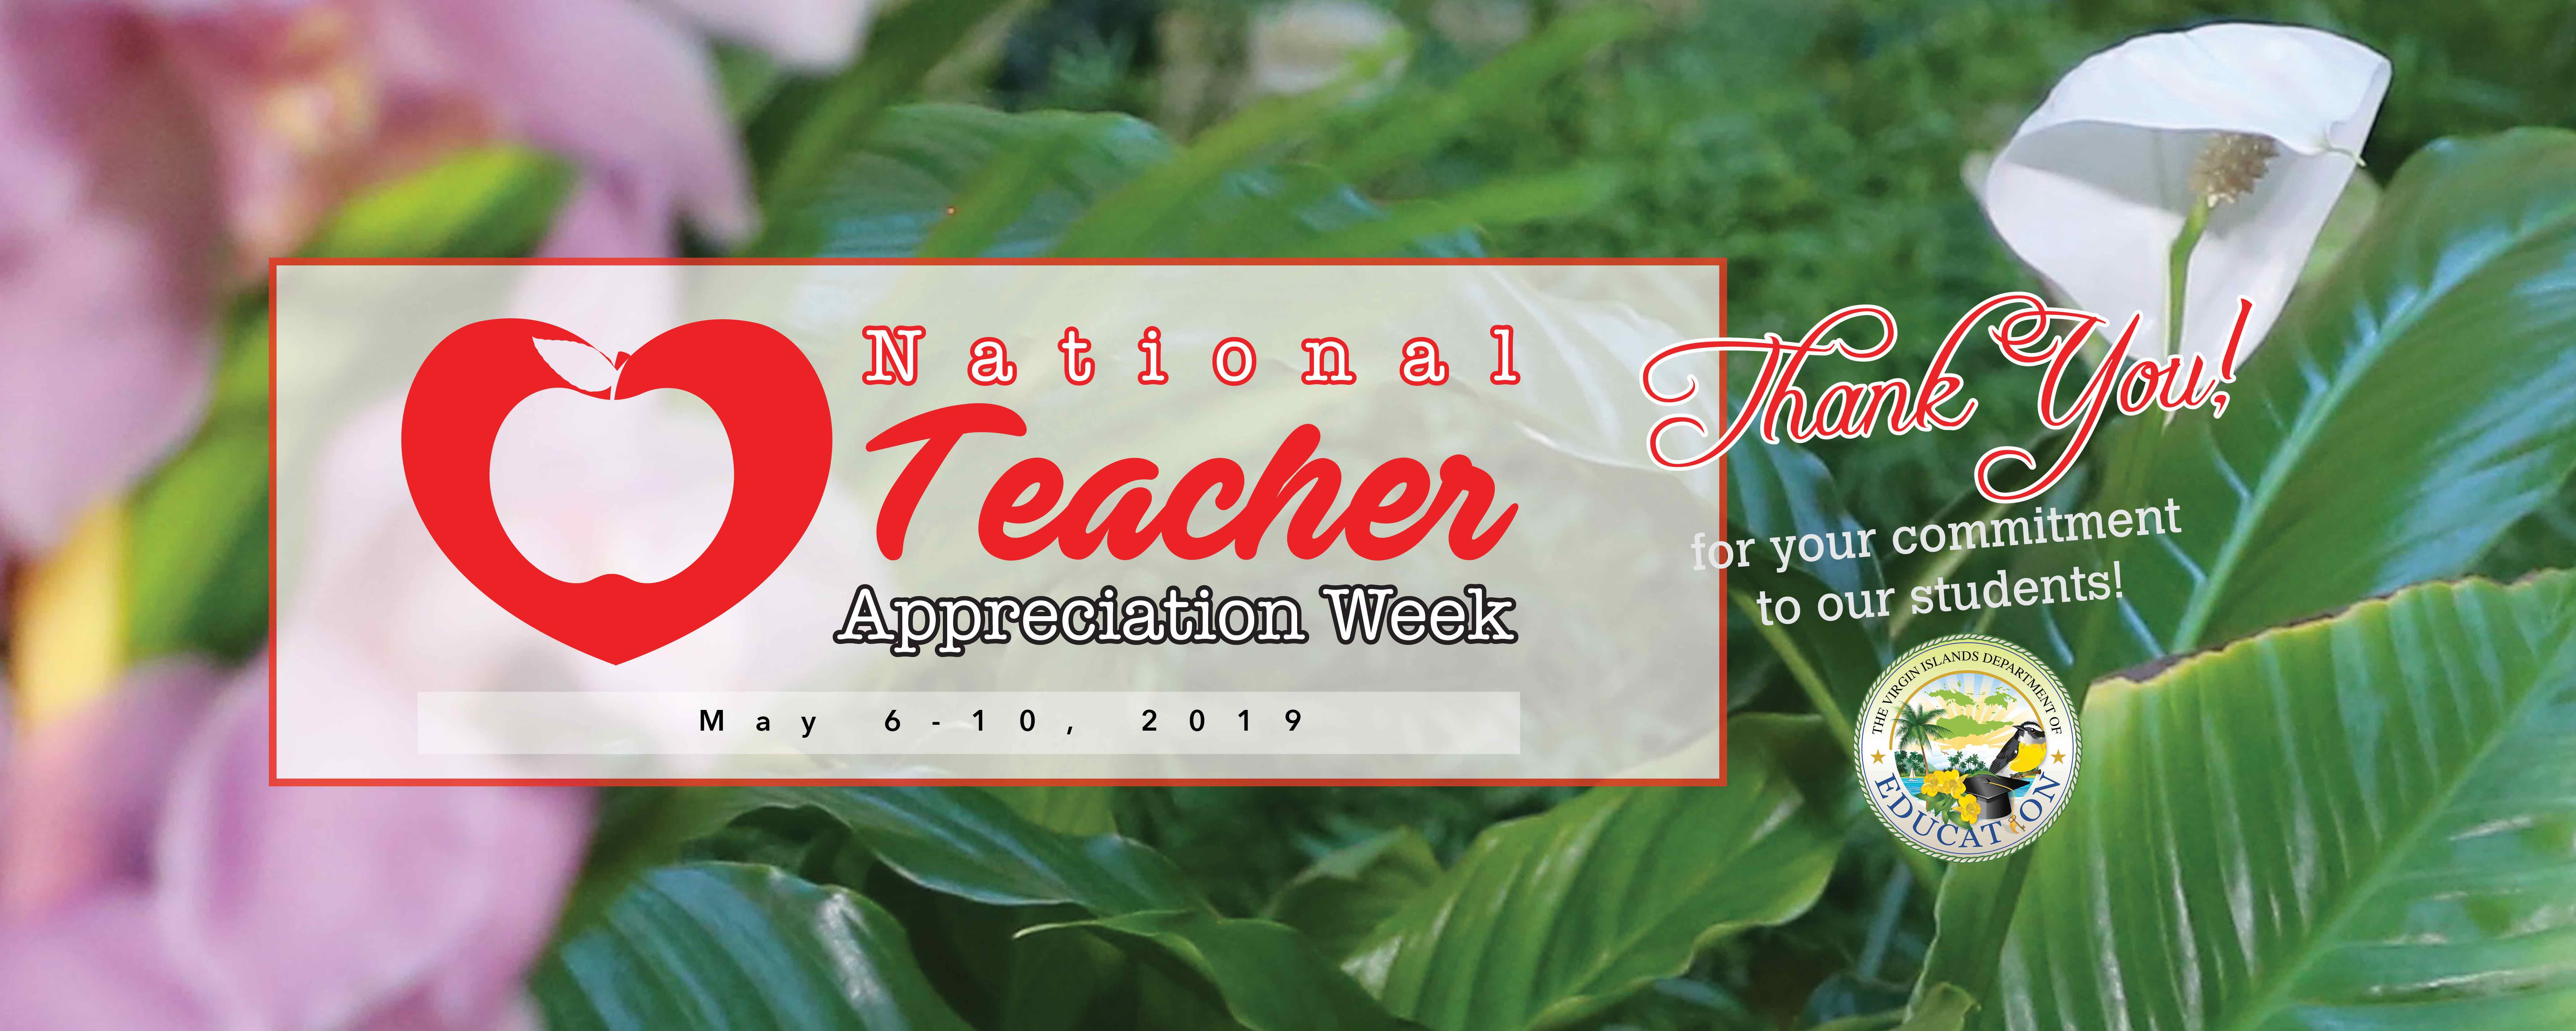 Celebrating National Teacher Appreciation Week - May 6 -10, 2019 (2)